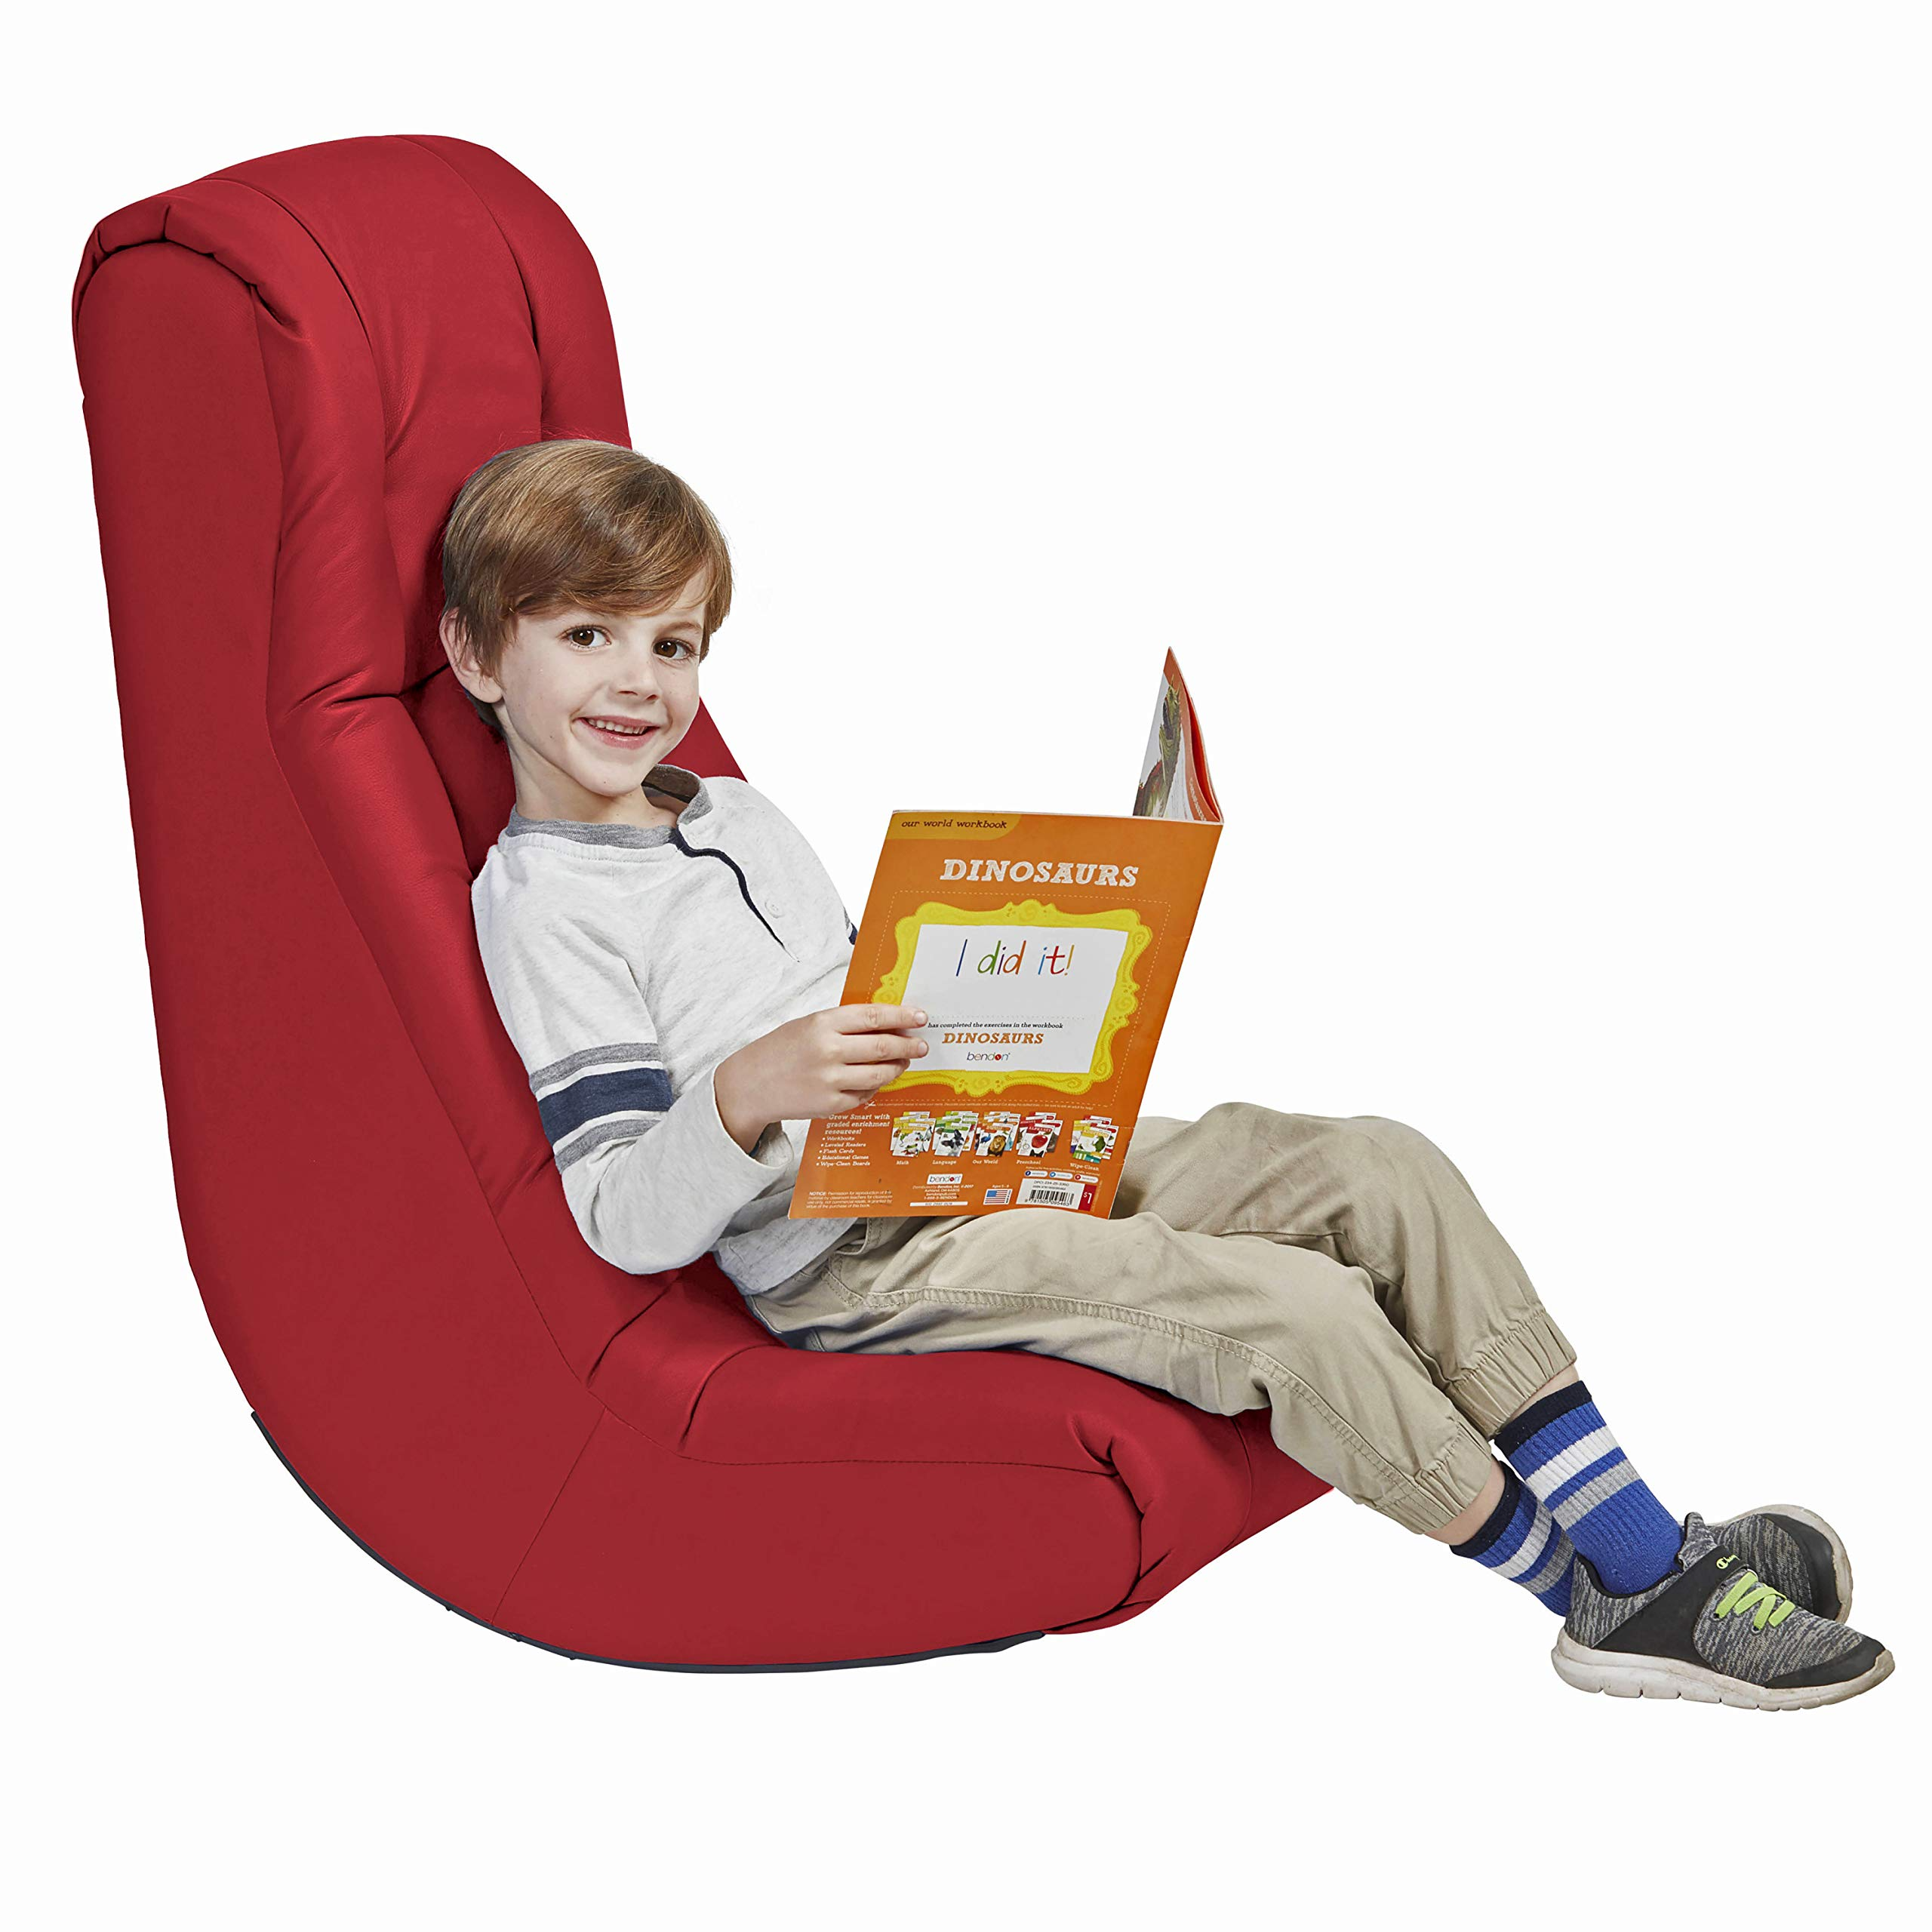 Soft Video Rocker - Cushioned Floor Chair for Kids, Teens and Adults - Great for Reading, Gaming, Meditating, TV - Red